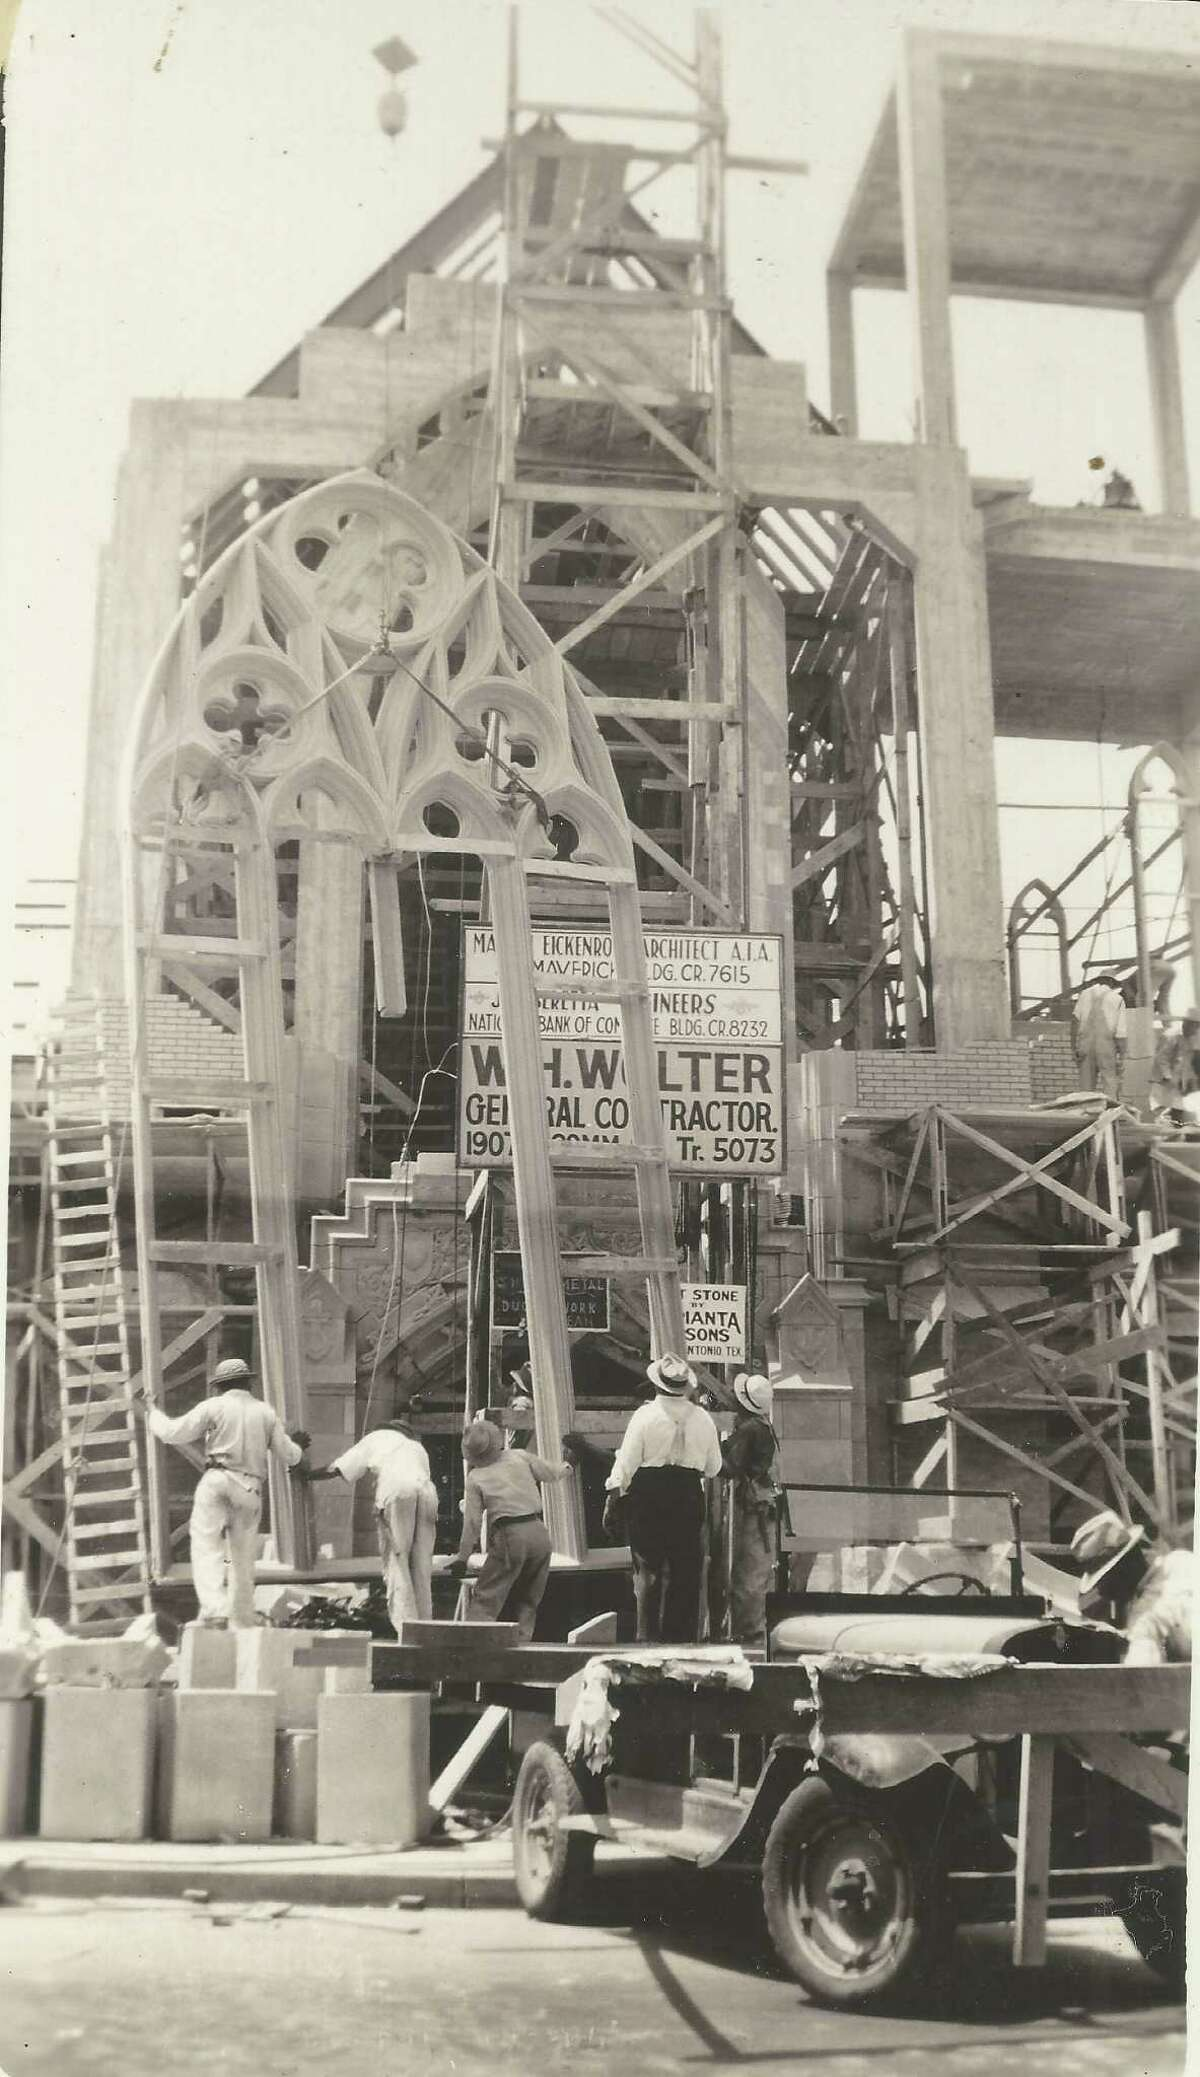 Construction workers move the framework of St. John's Lutheran Church's signature arch into position in 1932. The original church building was constructed in 1860 at Nueva and Presa streets; it was widened, lengthened and extensively remodeled in 1886. That building was demolished in 1927 when the city decided to widen Nueva Street. Services were held in the parish hall until a new church was built. The new sanctuary, located at 502 E. Nueva St. was dedicated Dec. 18, 1932. The sanctuary was rededicated in November 2019.